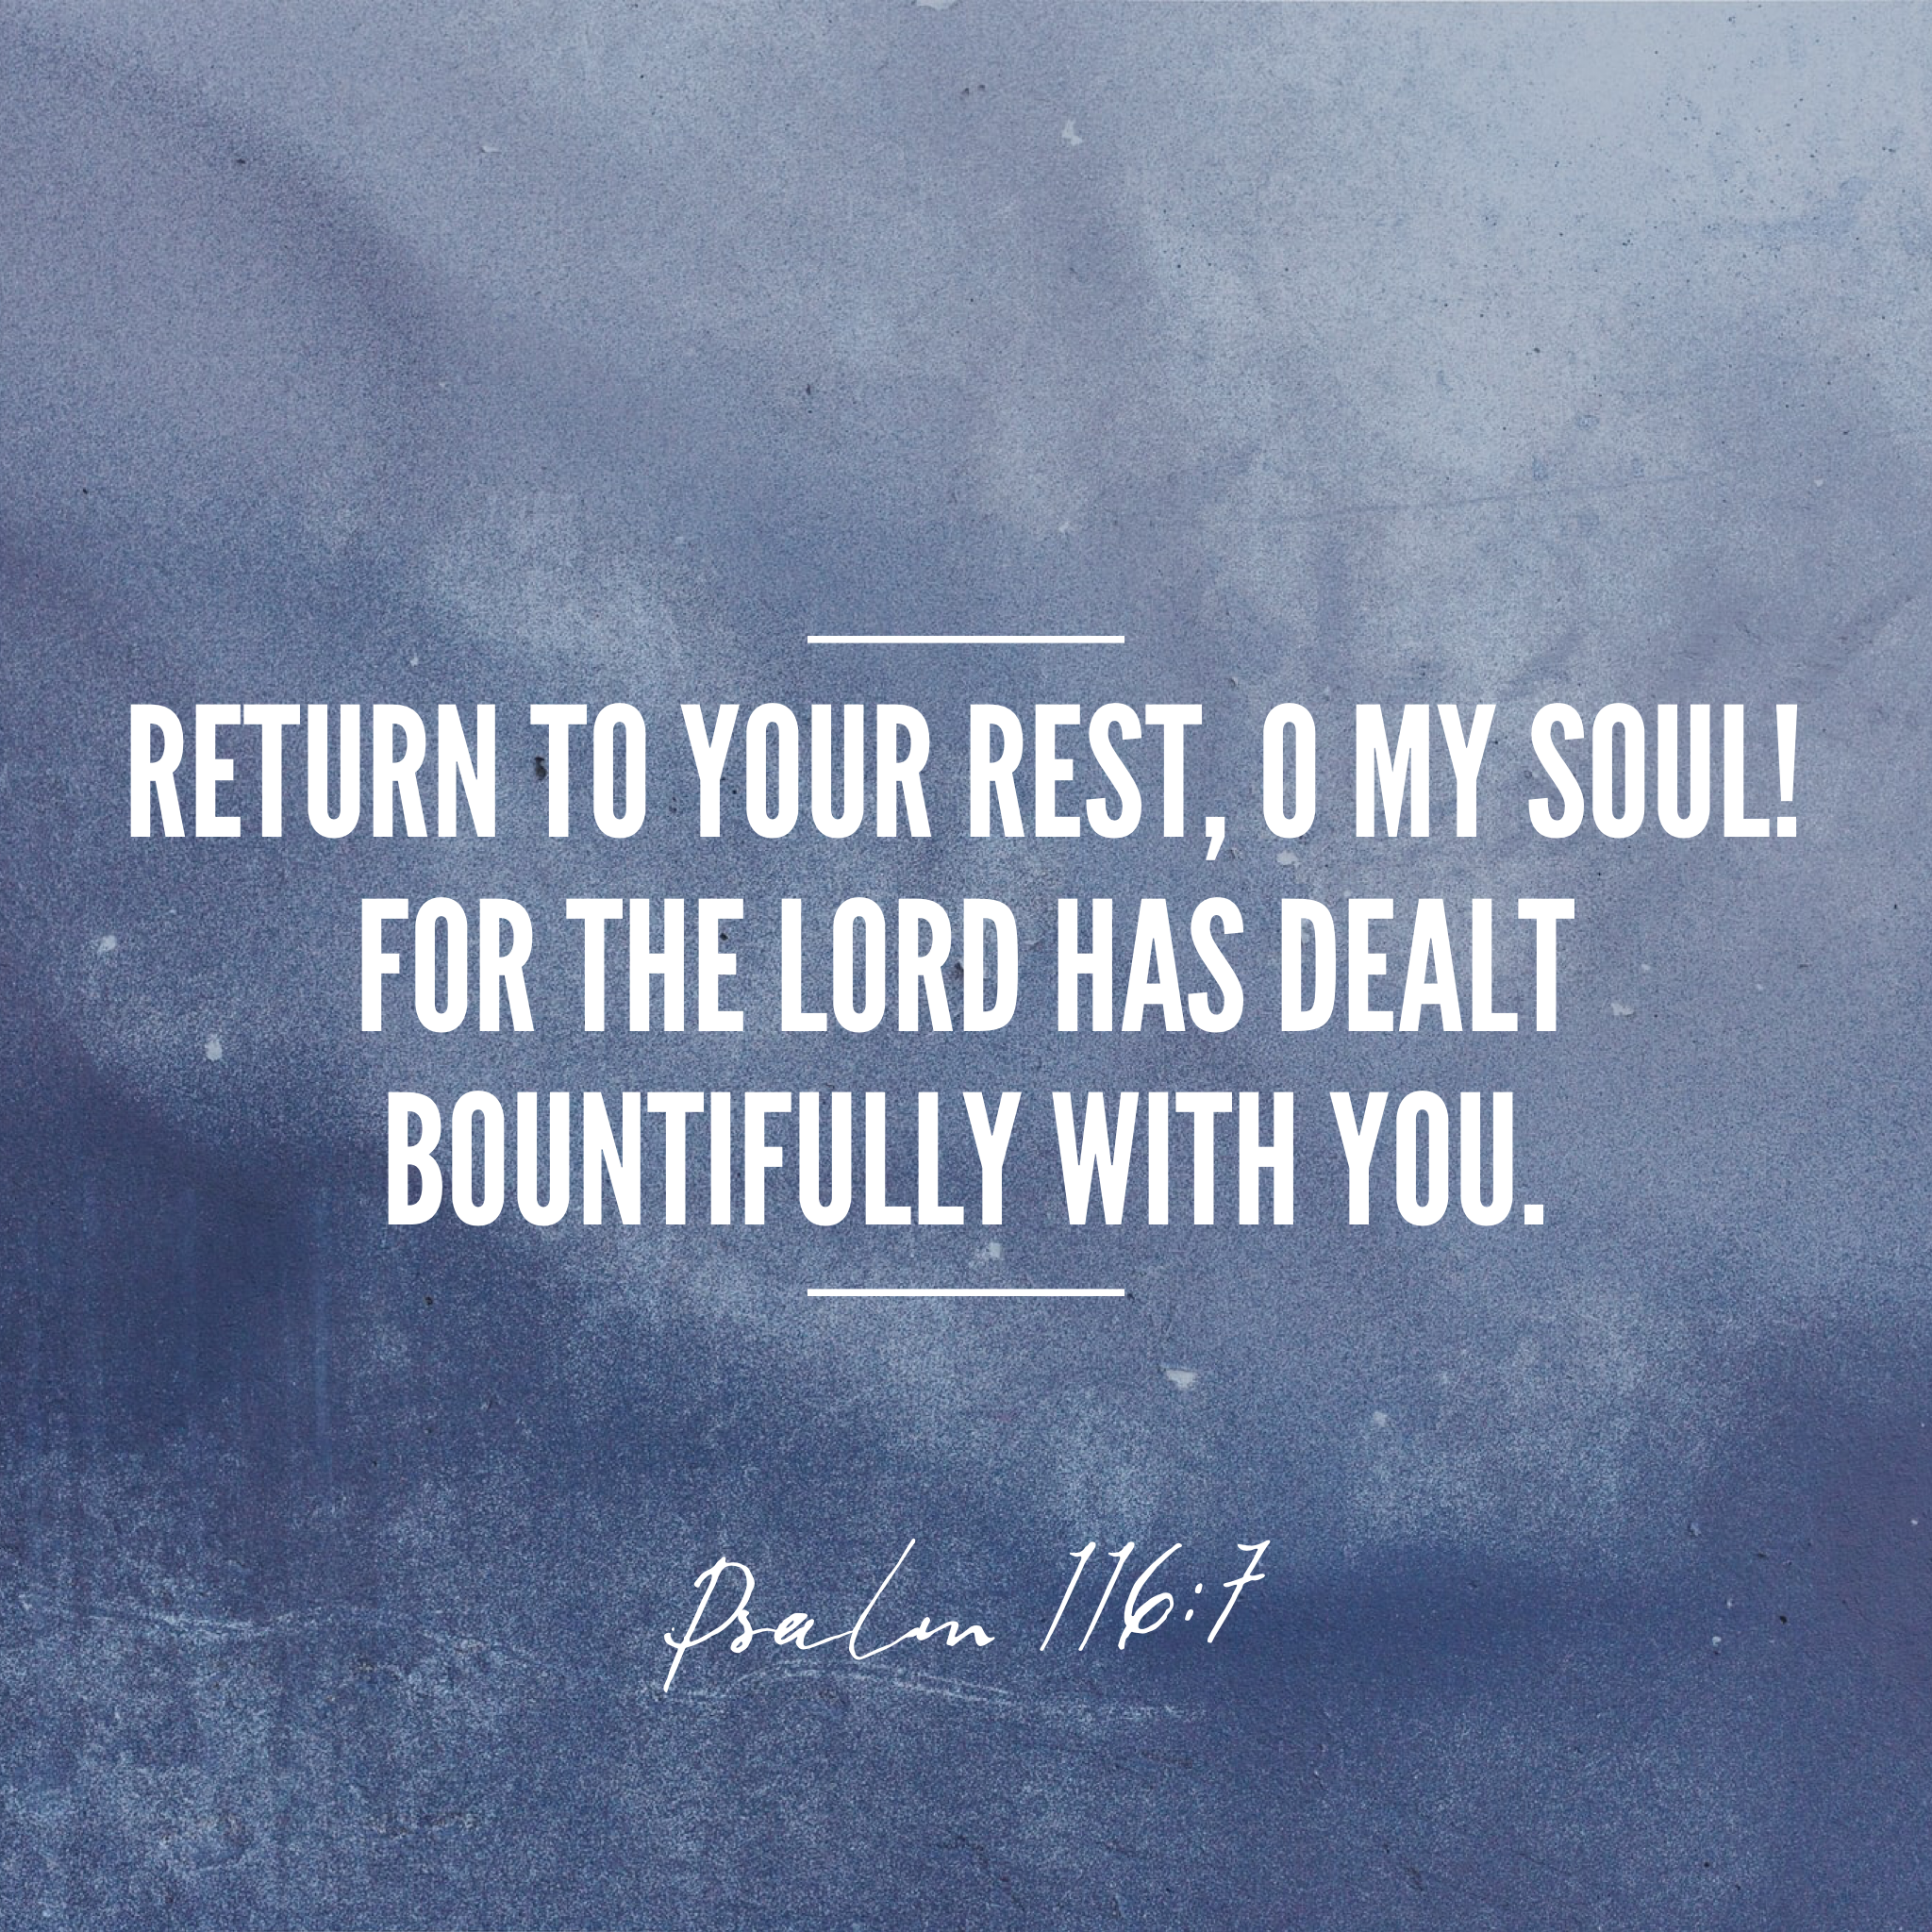 Return to your rest, o my soul! For the Lord has dealt bountifully with you. Psalm 116:7